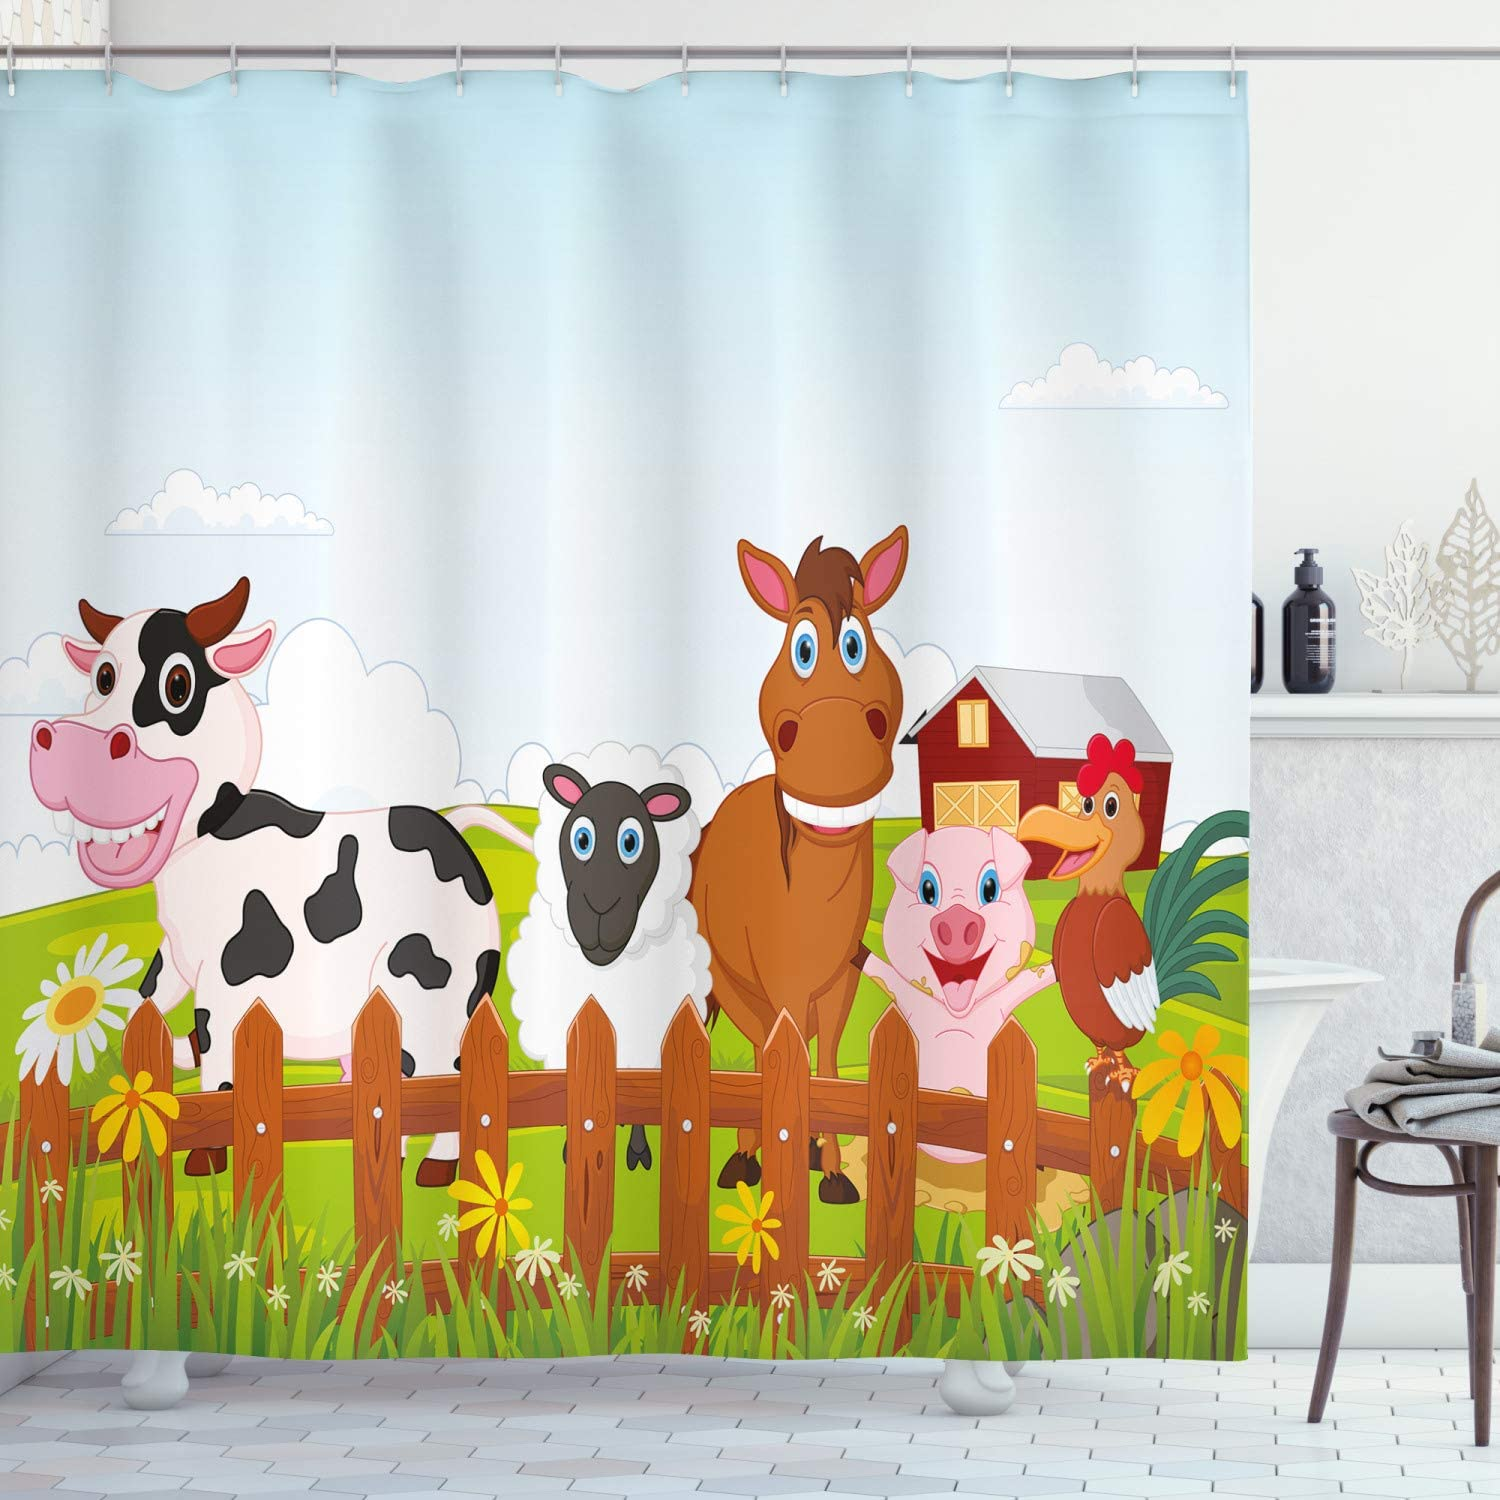 """Ambesonne Animal Shower Curtain, Farm Creatures with Cow Horse Goat Pig and Chicken by The Fences Kids Cartoon, Cloth Fabric Bathroom Decor Set with Hooks, 70"""" Long, Pale Brown"""